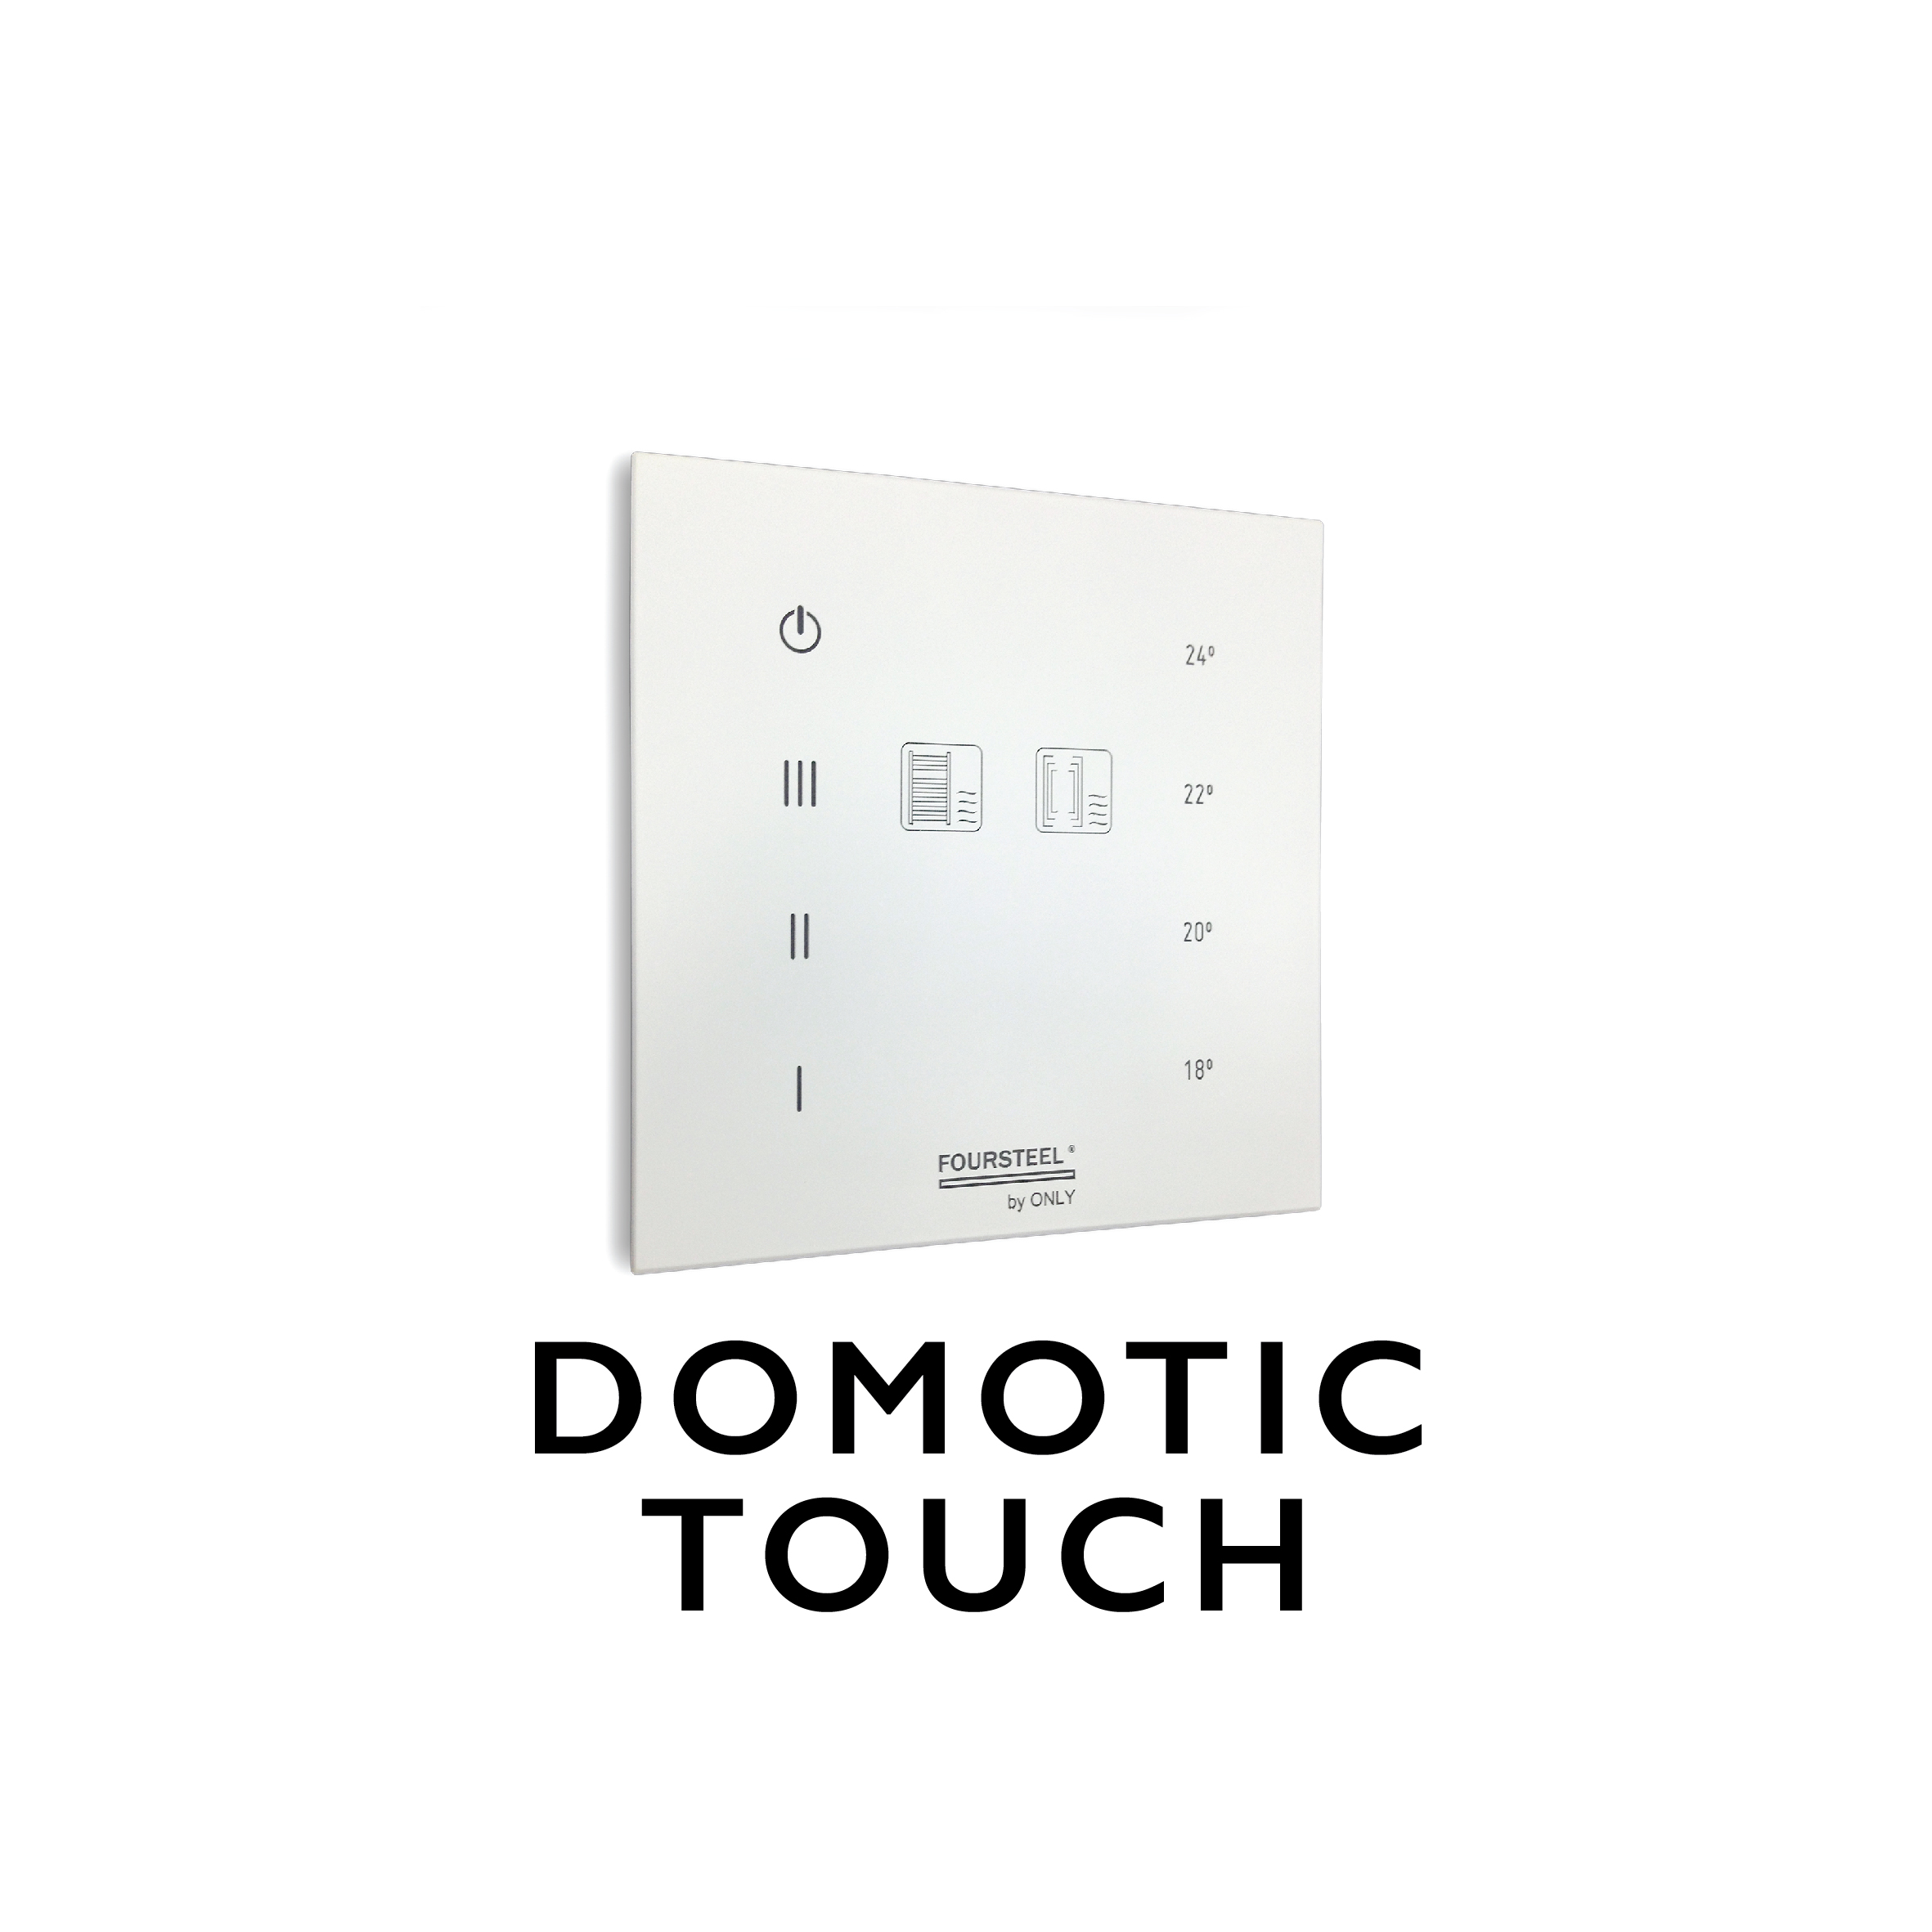 DOMOTIC TOUCH – INSTRUCTION MANUAL